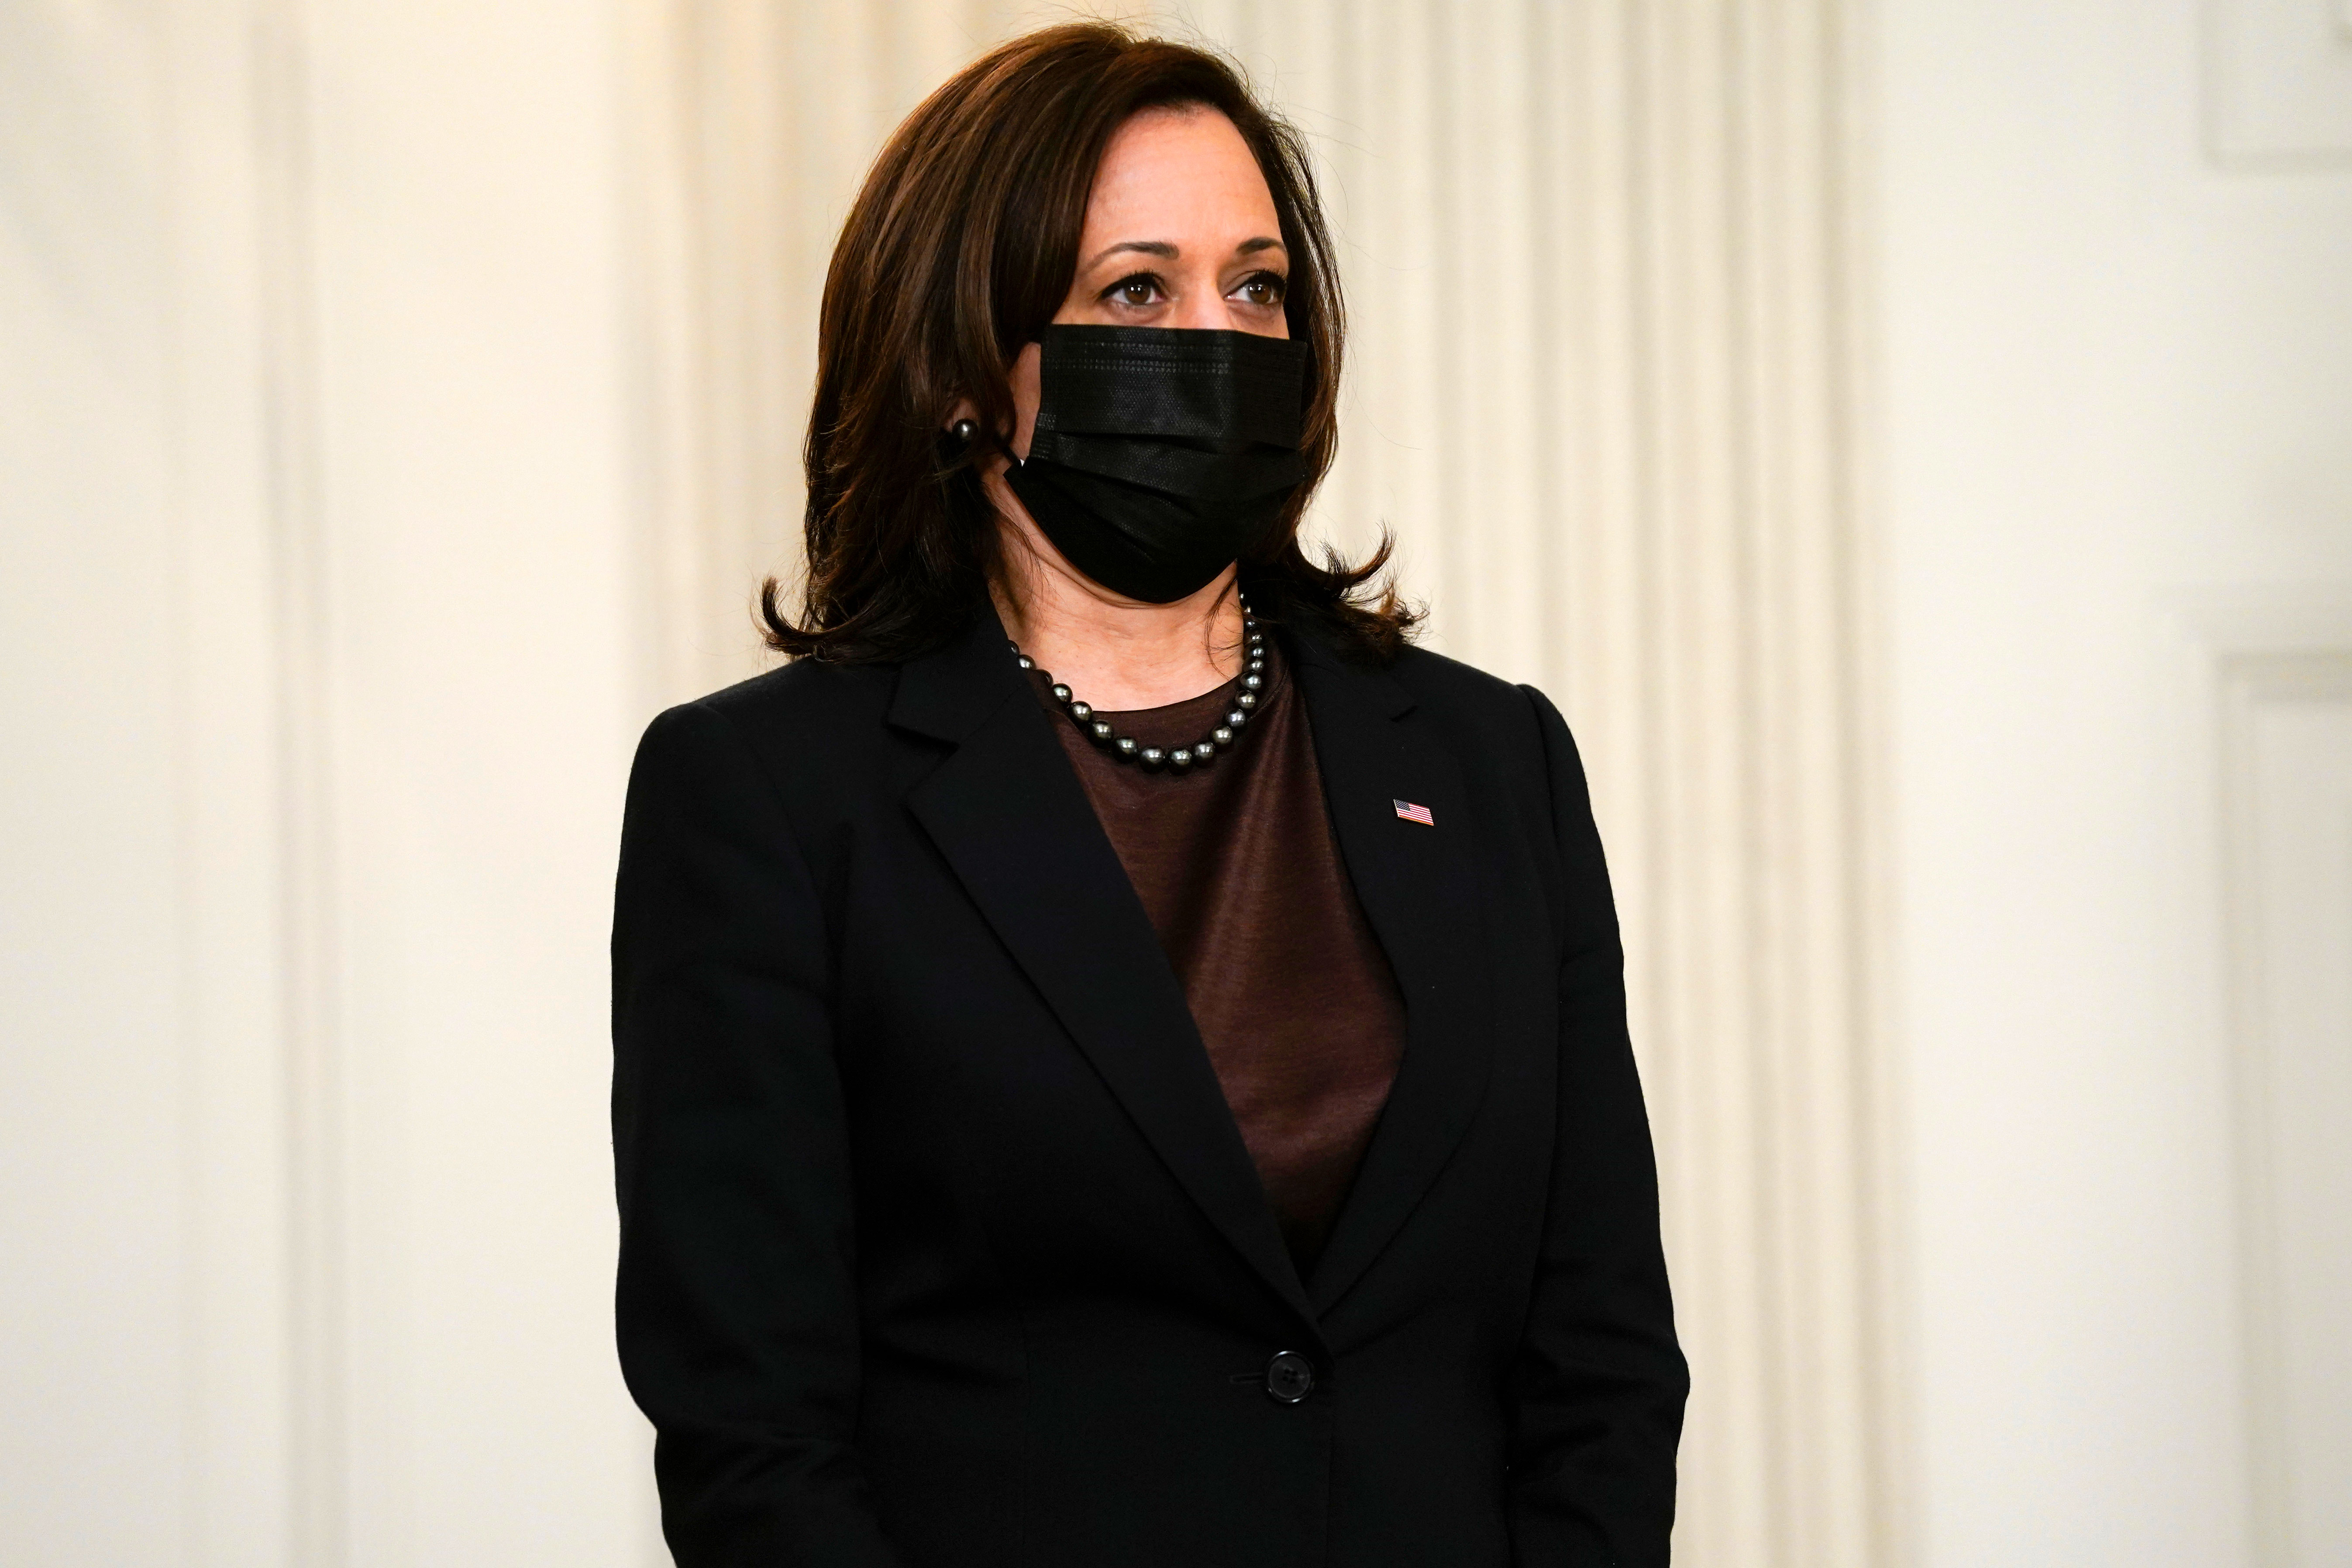 Vice President Kamala Harris at the White House on March 2.